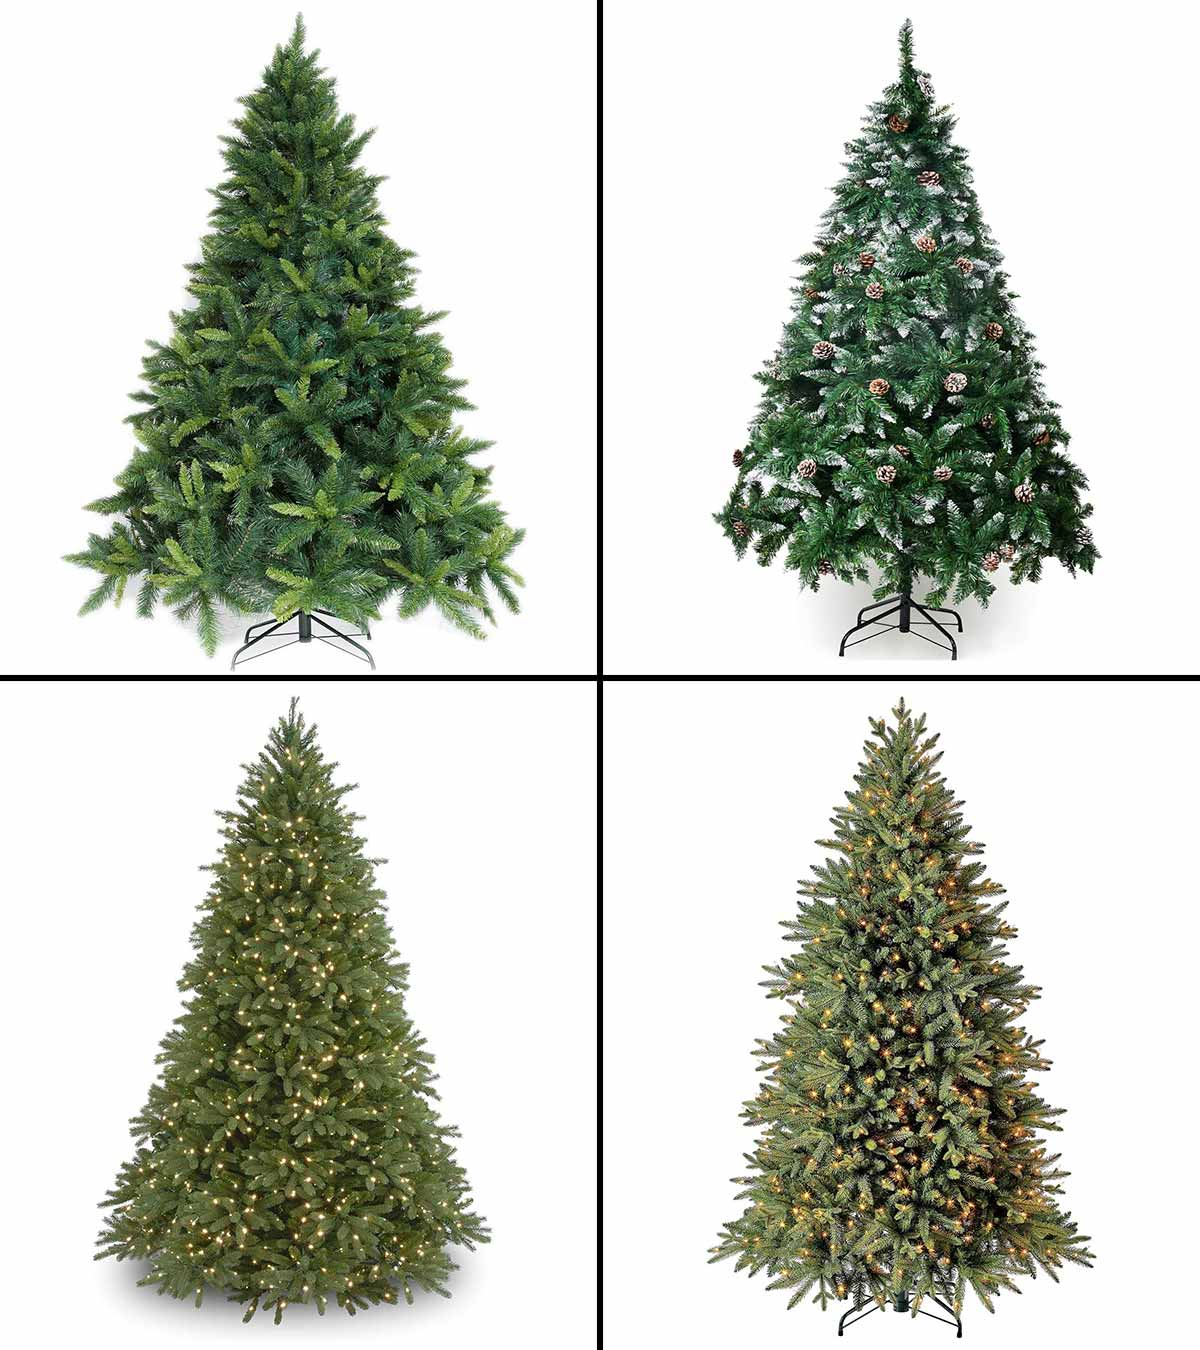 Most Realistic Artificial Christmas Trees 2021 The 21 Best Artificial Christmas Trees Of 2021